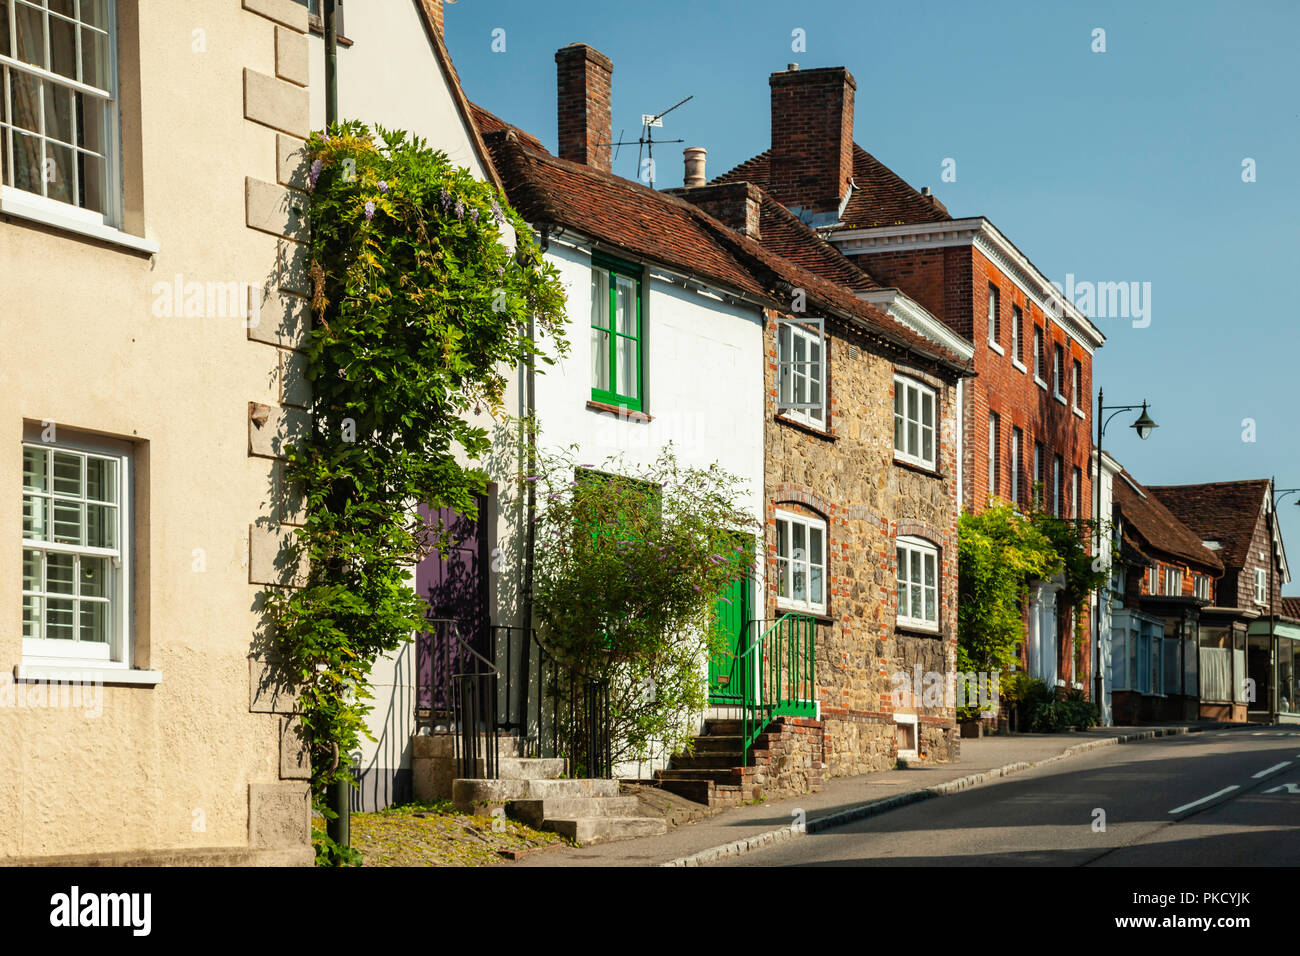 Petworth, West Sussex, England. - Stock Image